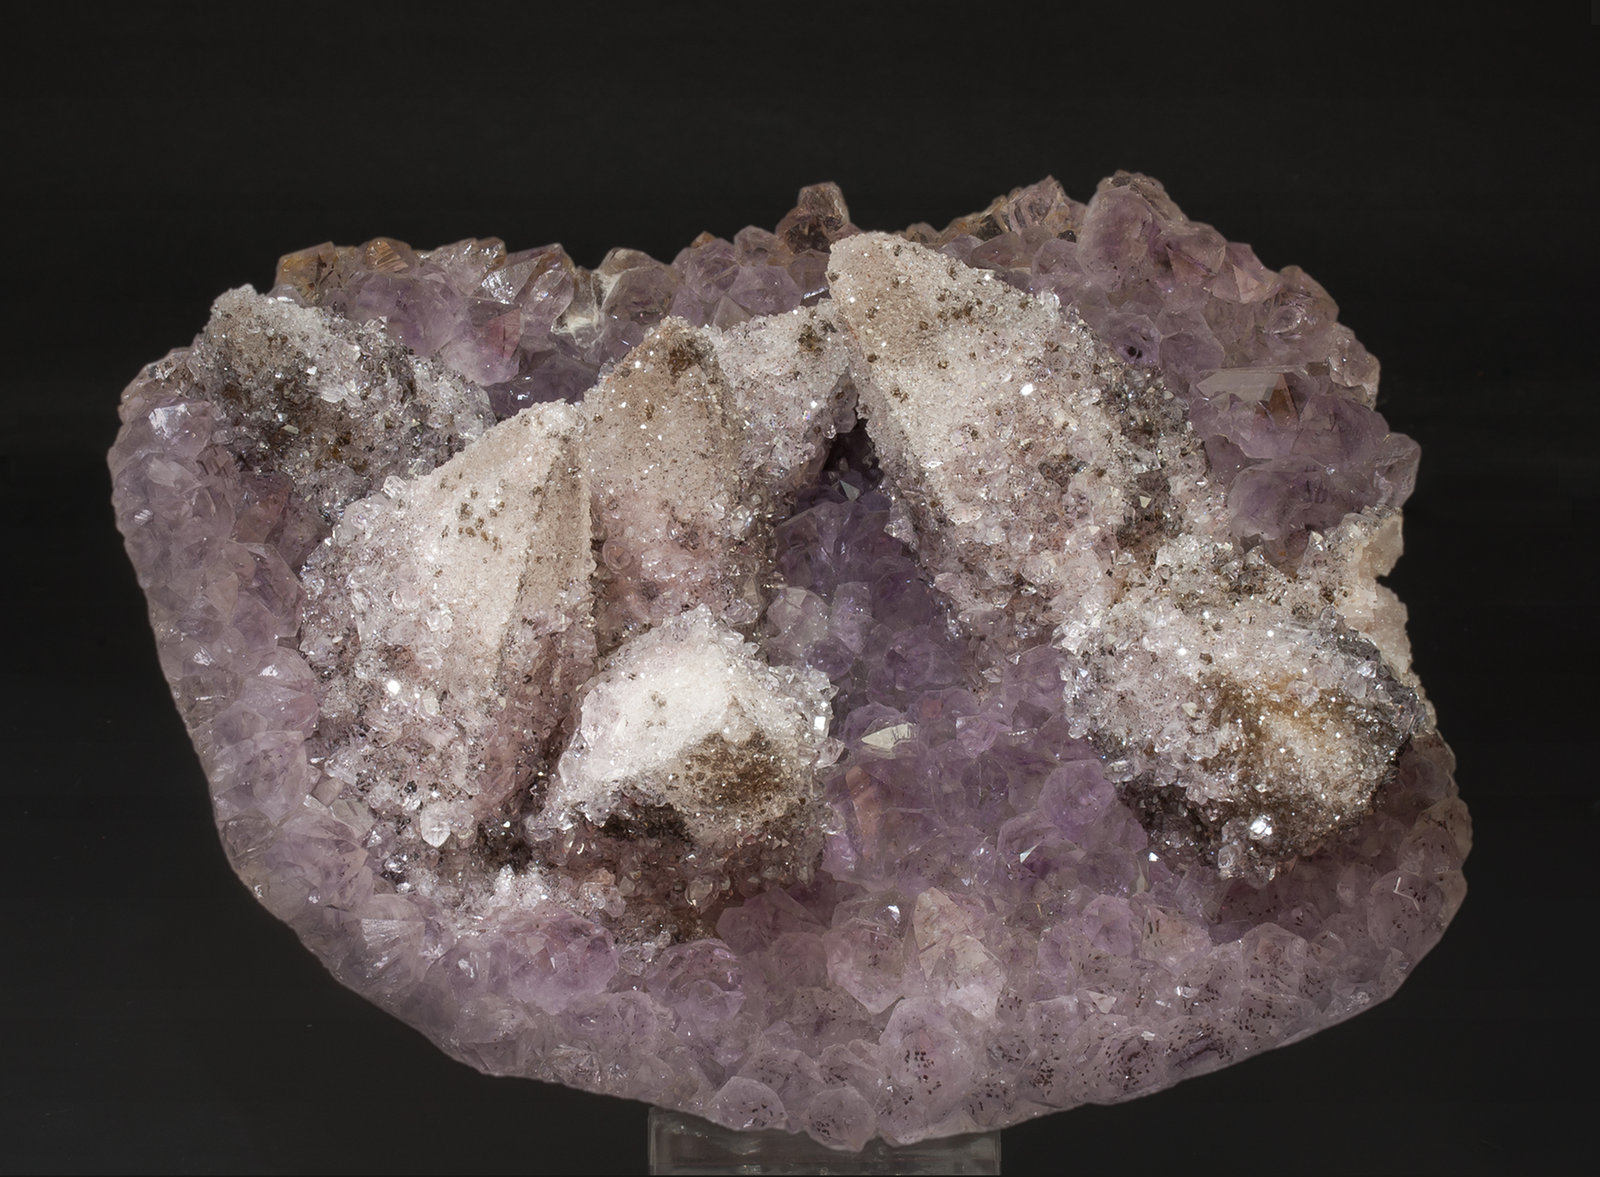 specimens/s_imagesZ9/Calcite-TC93Z9f.jpg